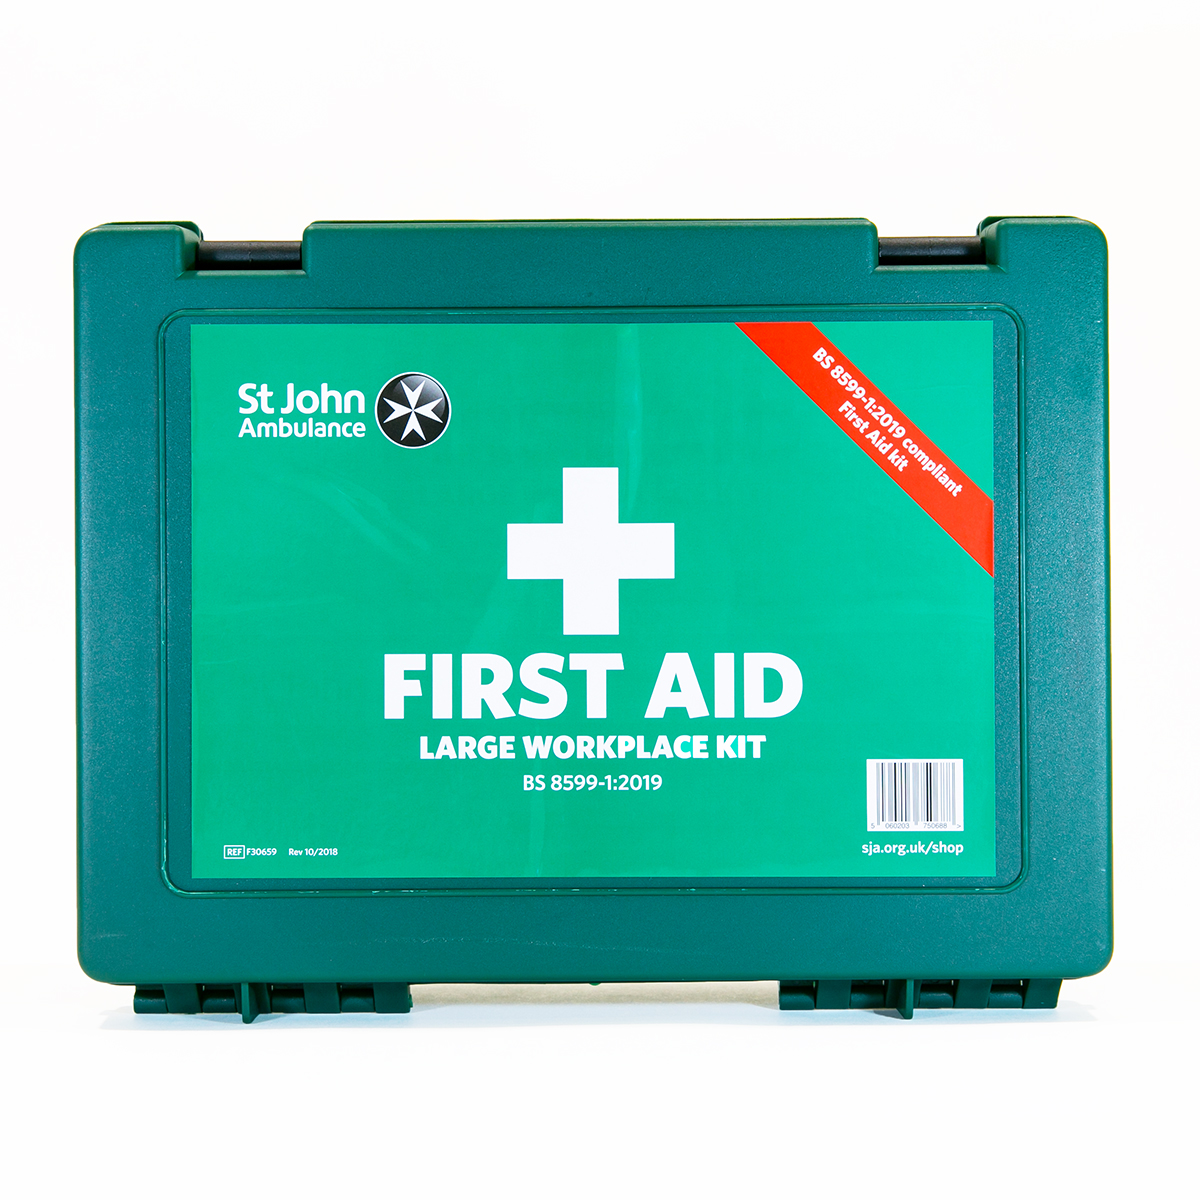 St John Ambulance Large Standard Workplace First Aid Kit BS 8599-1:2019